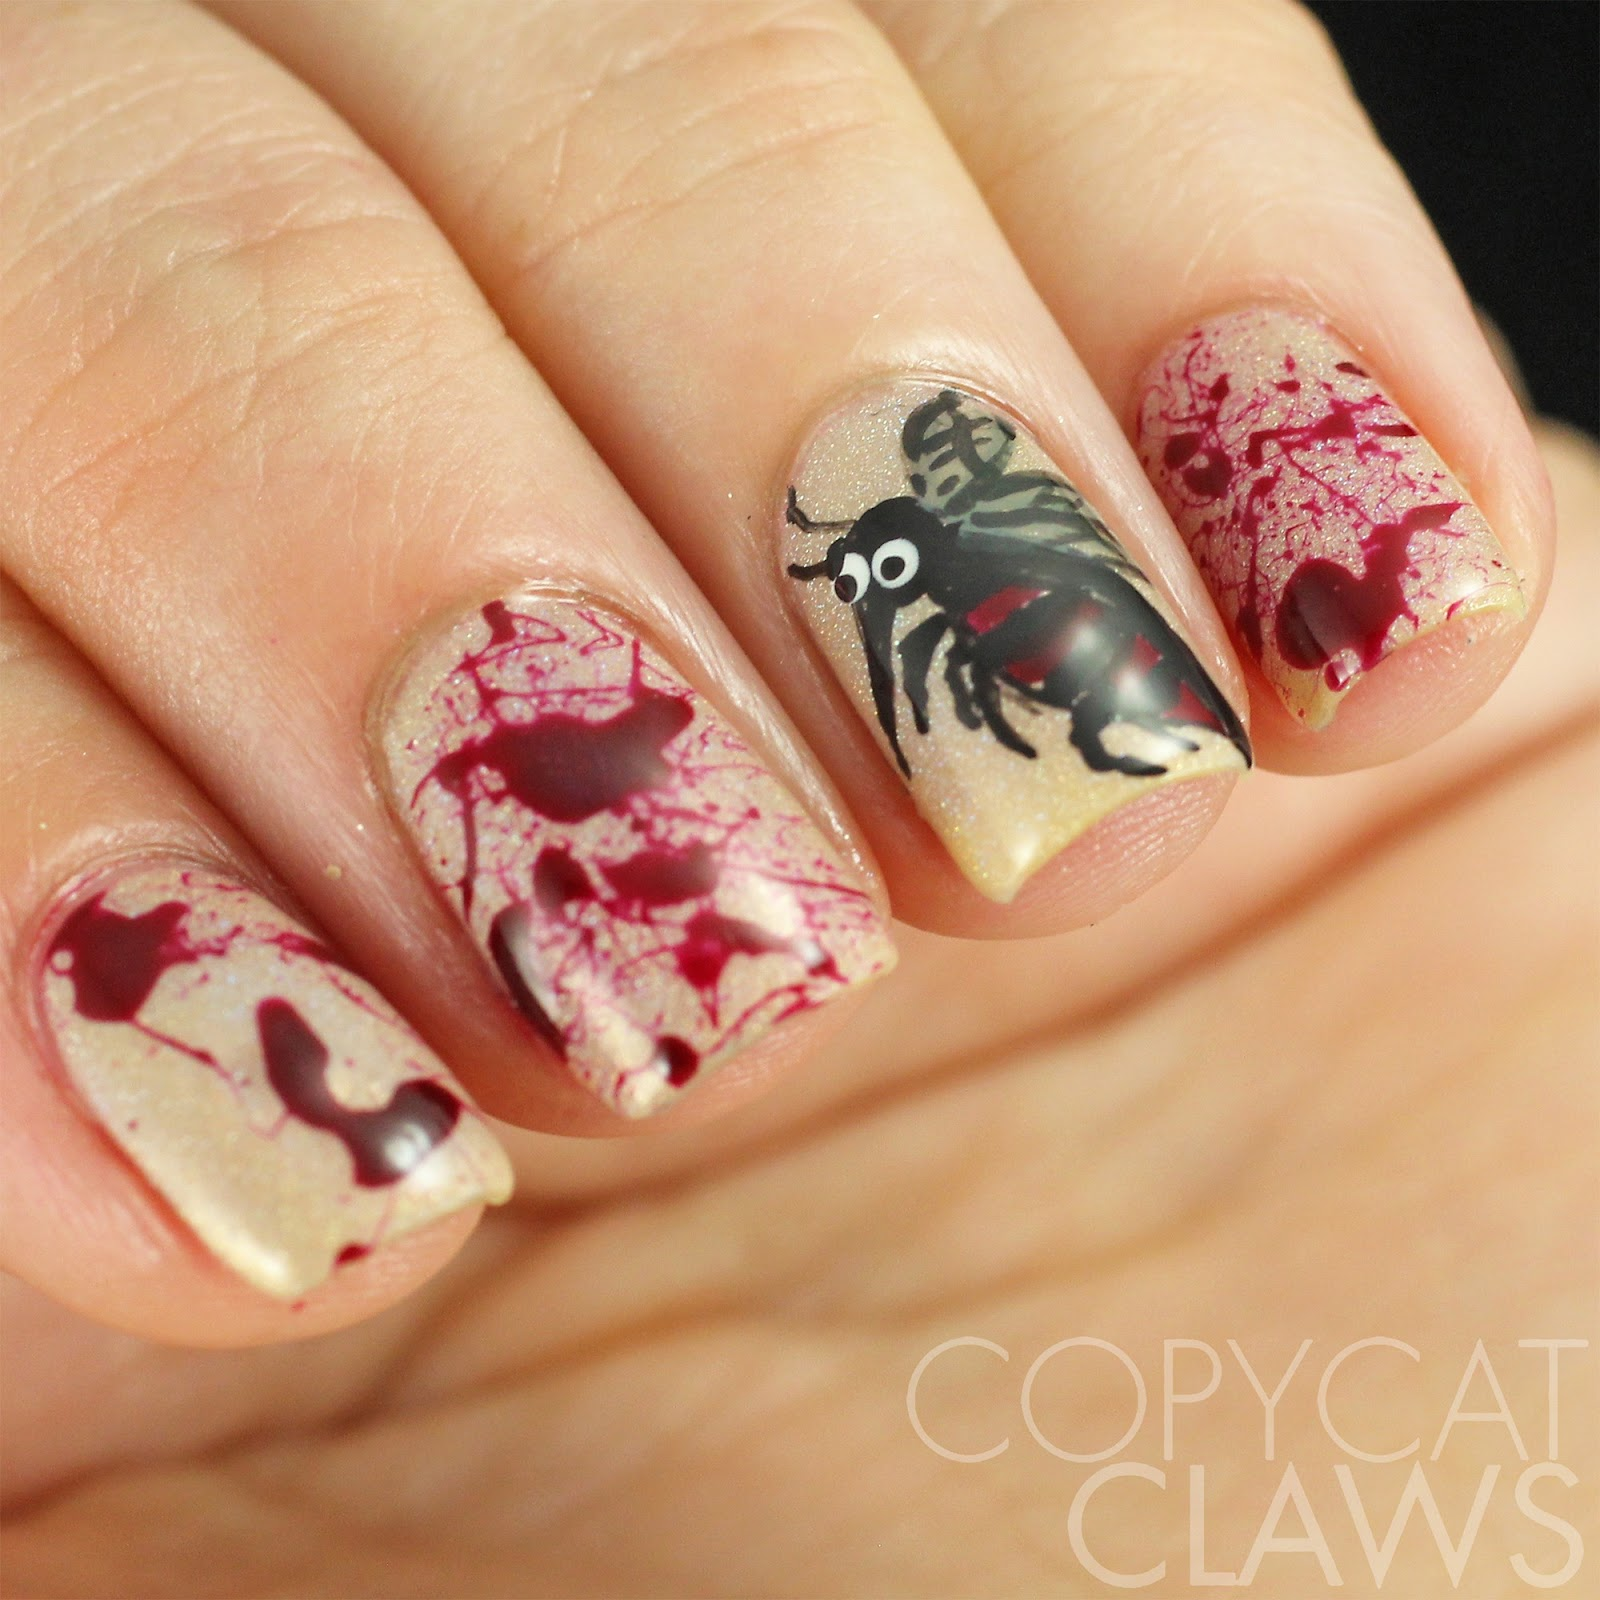 Copycat Claws: 40 Great Nail Art Ideas - Insects